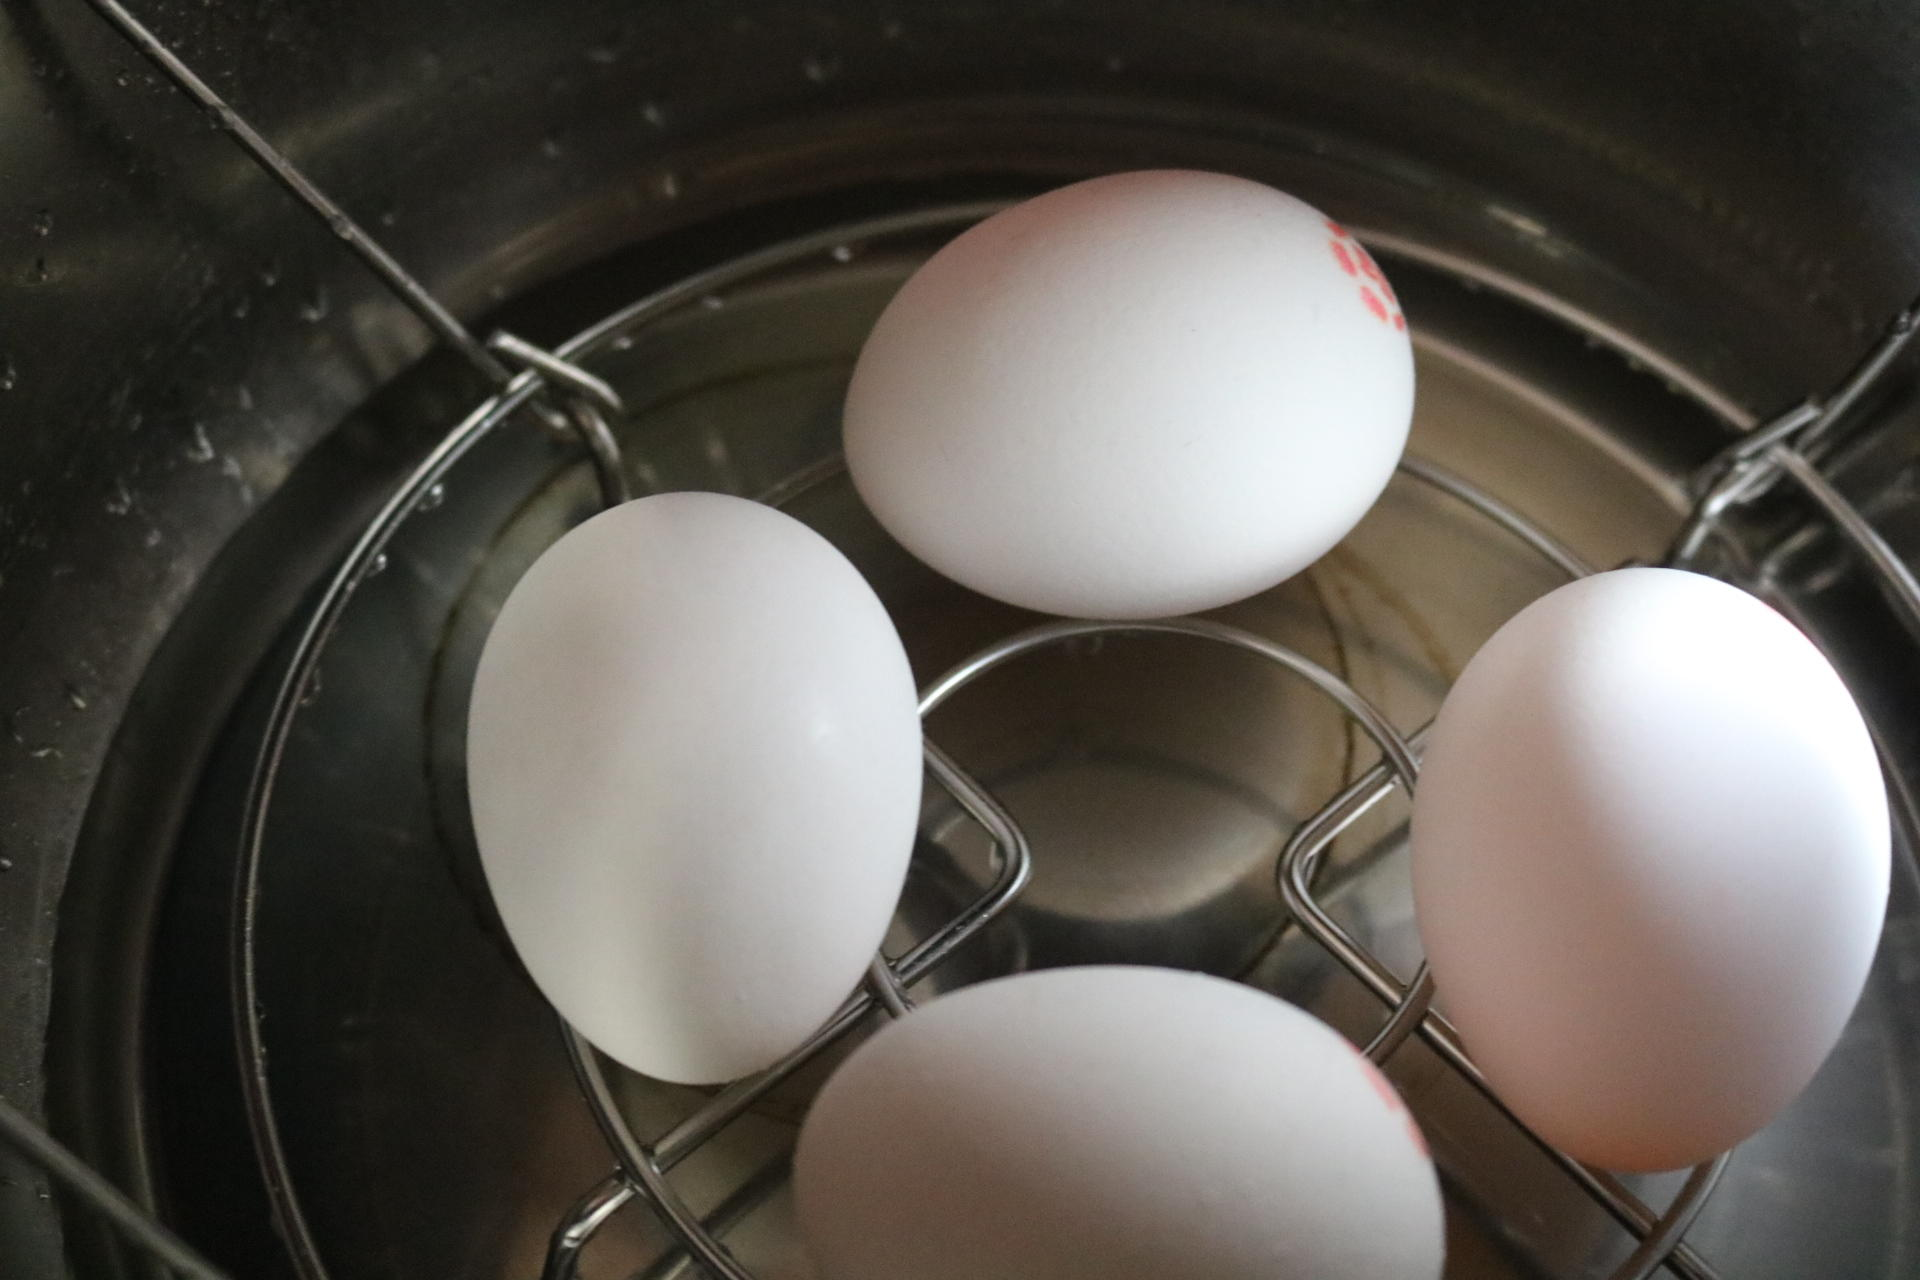 boiling-eggs-in-an-instant-pot